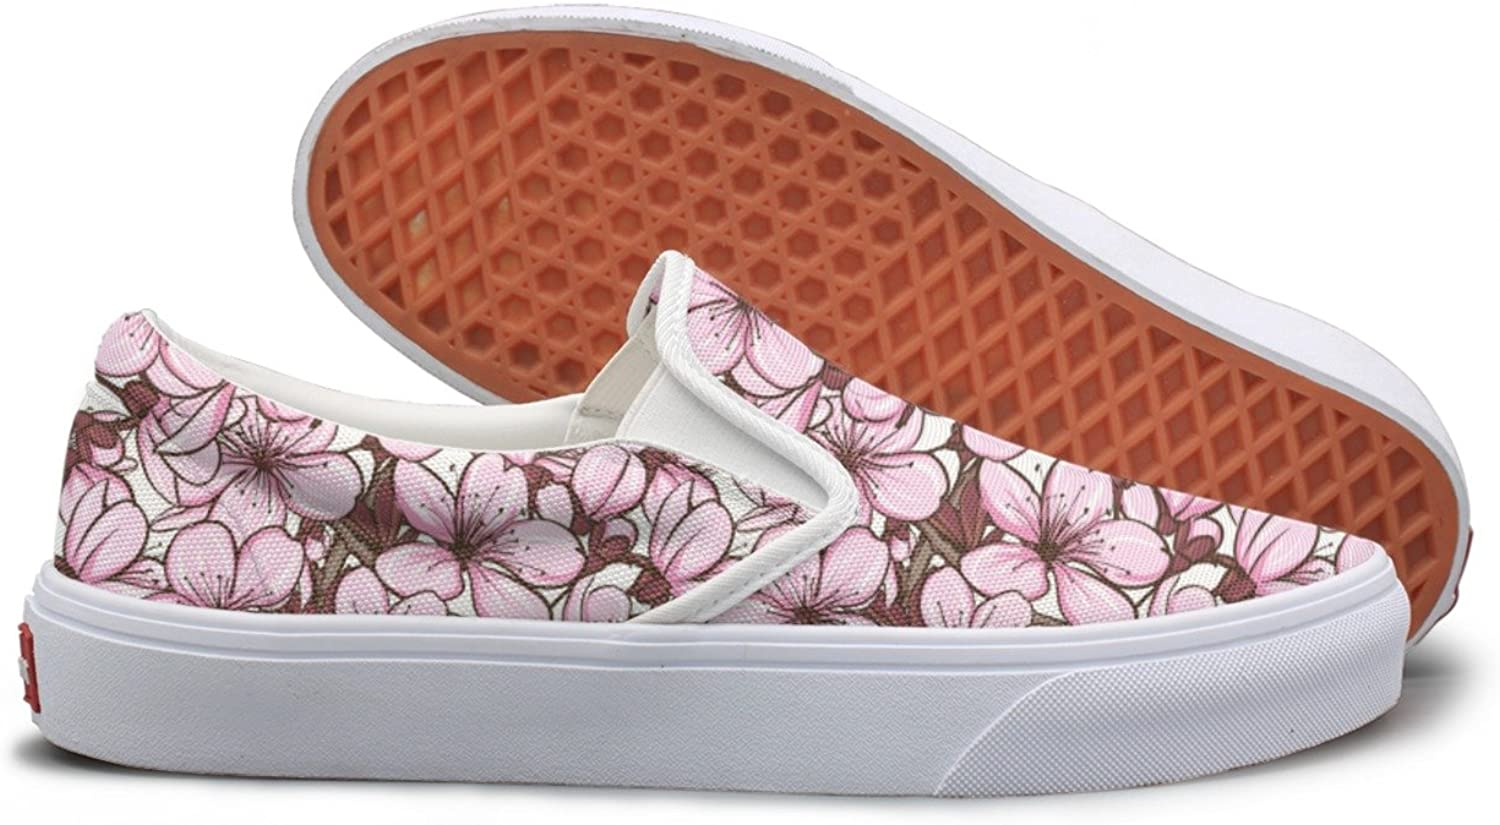 Casual Cherry Blossom Sakura Figure Woman Canvas Sneakers shoes